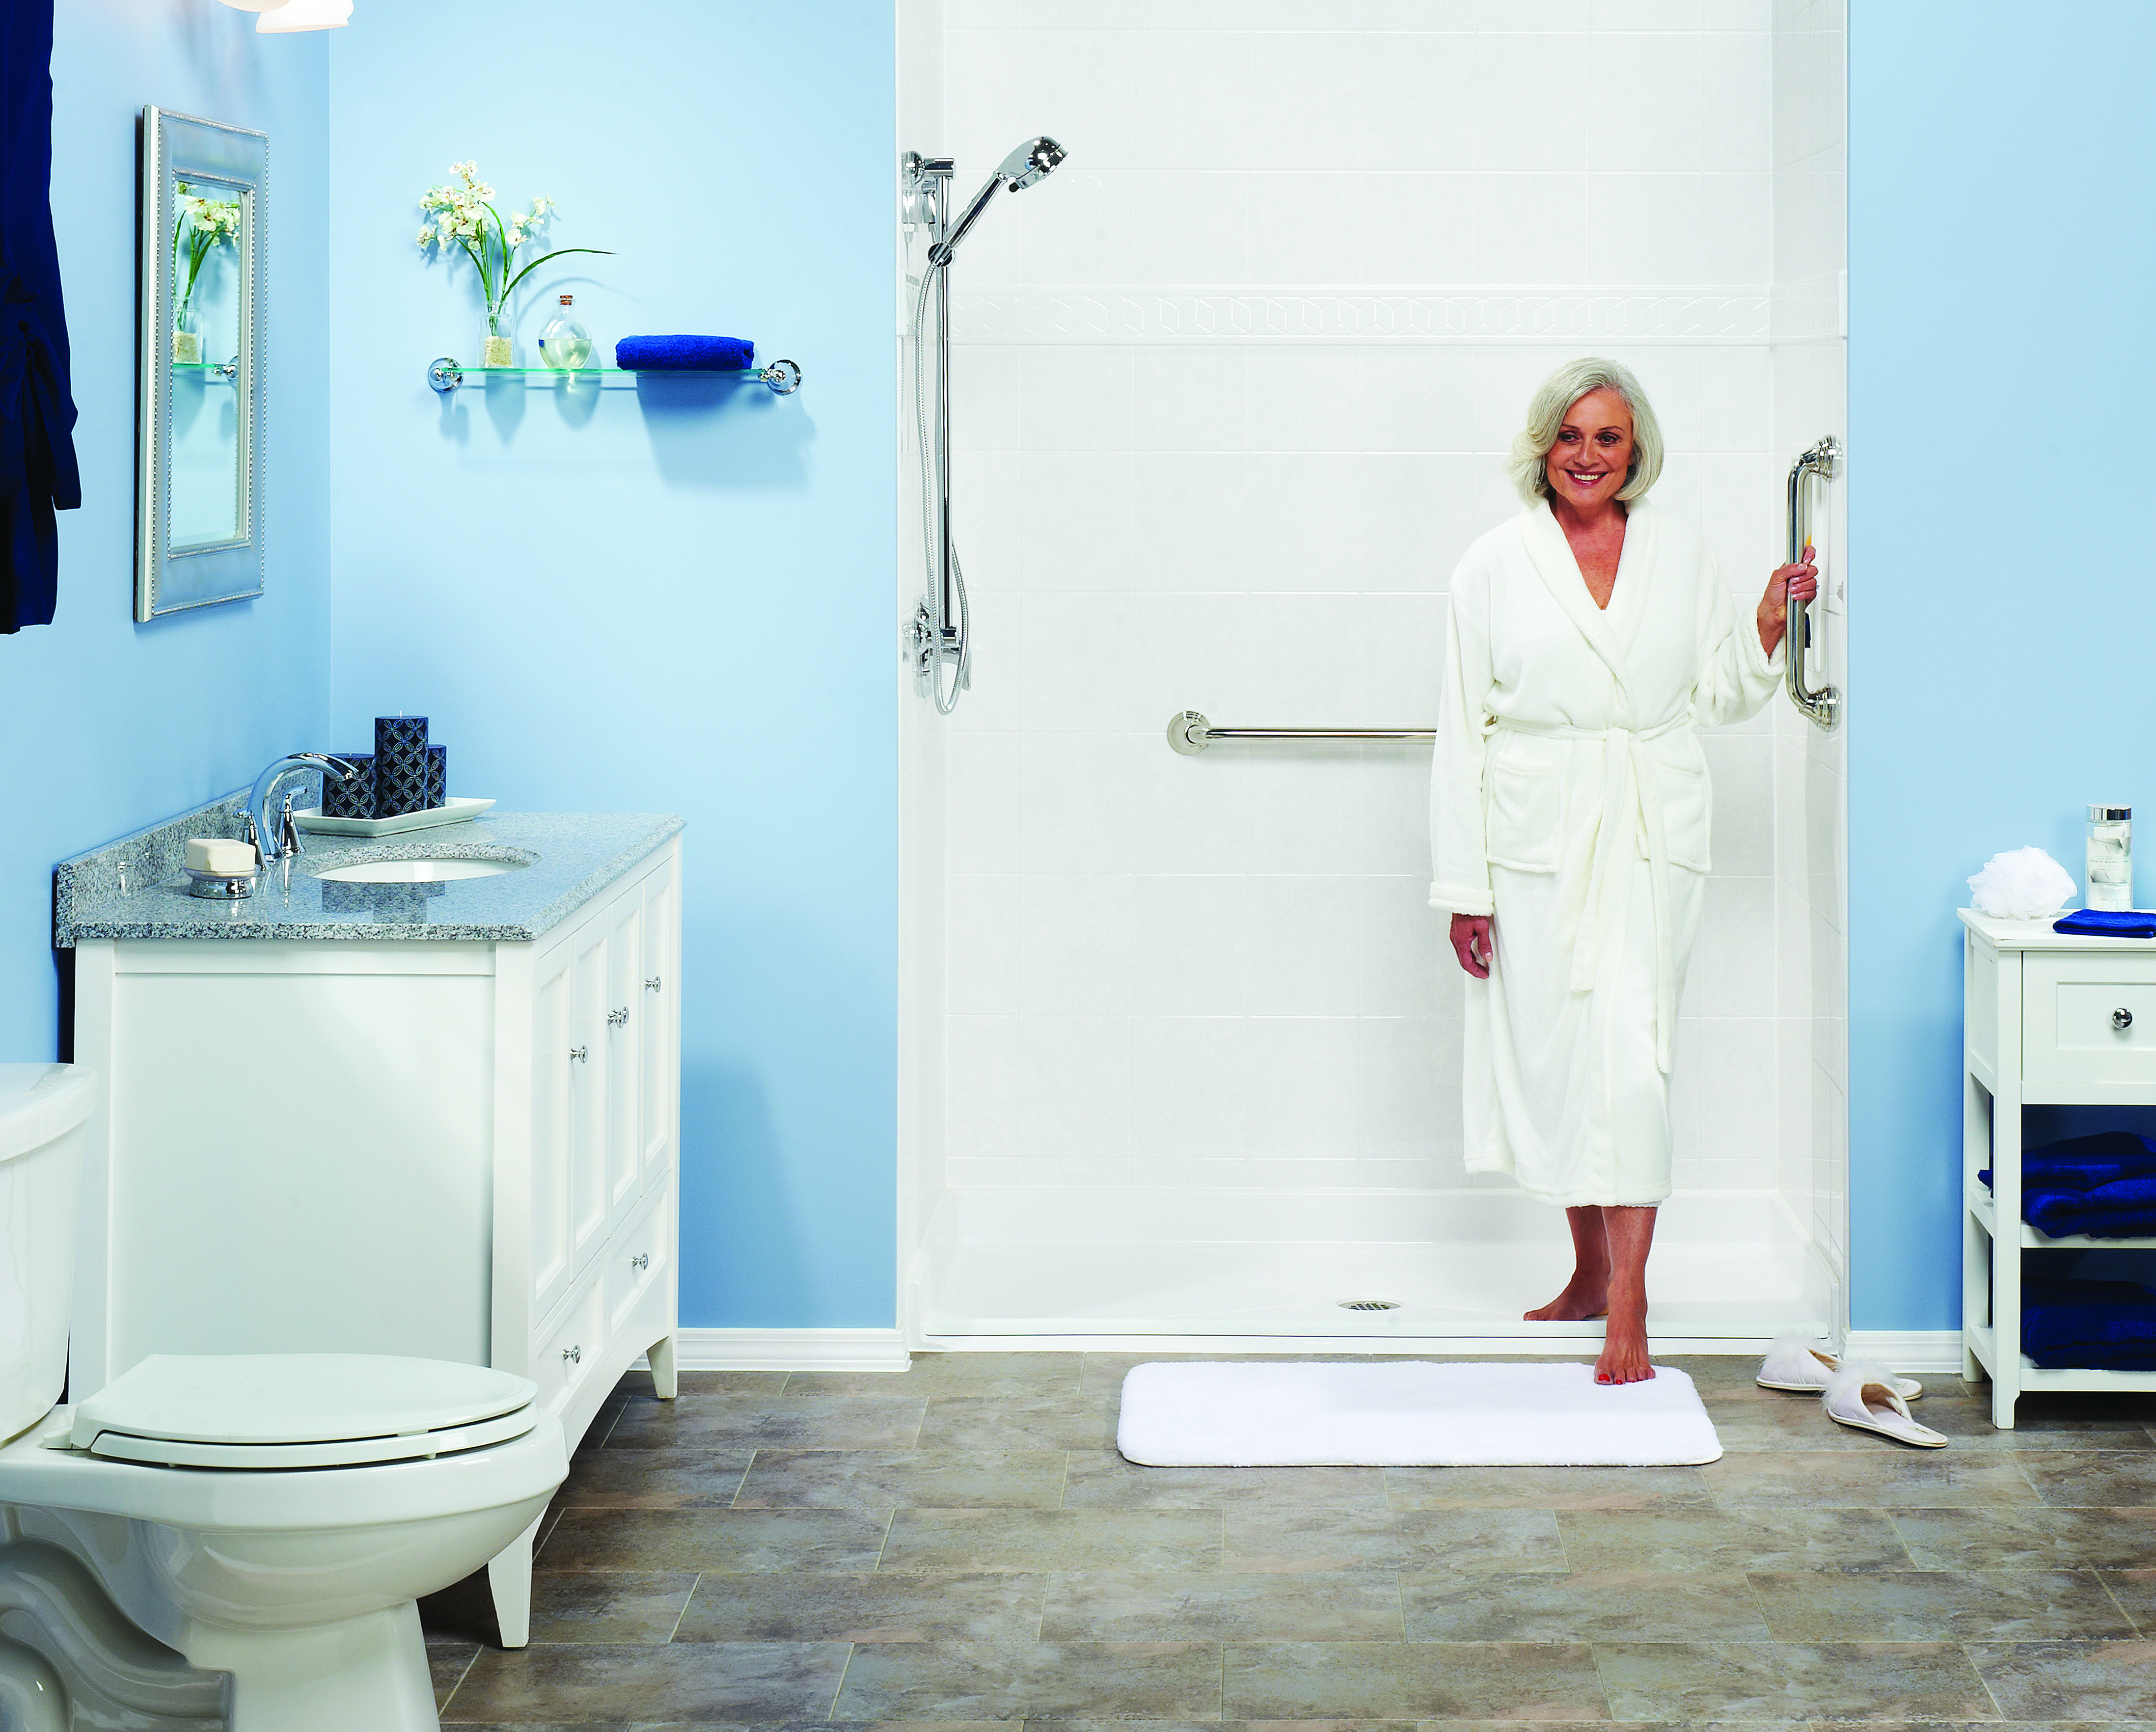 Walk-in Showers – Safe Step Walk-in Tubs